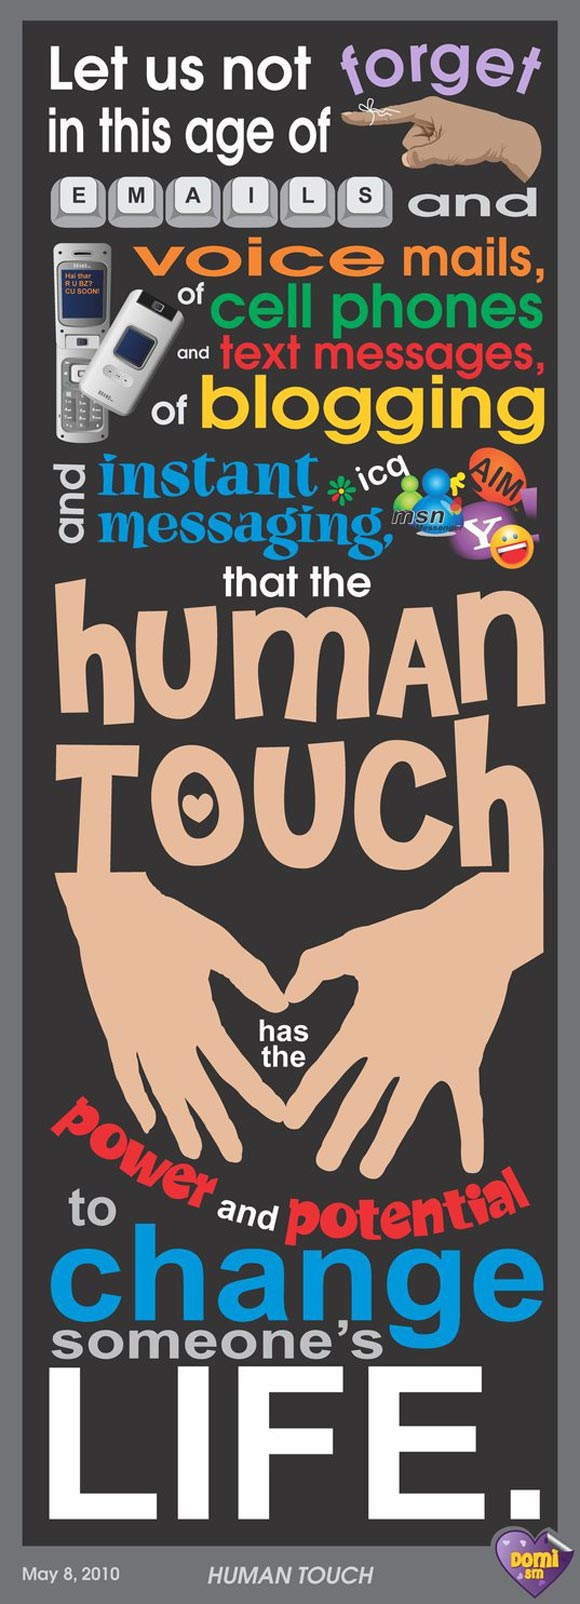 Human Touch by DomiSM